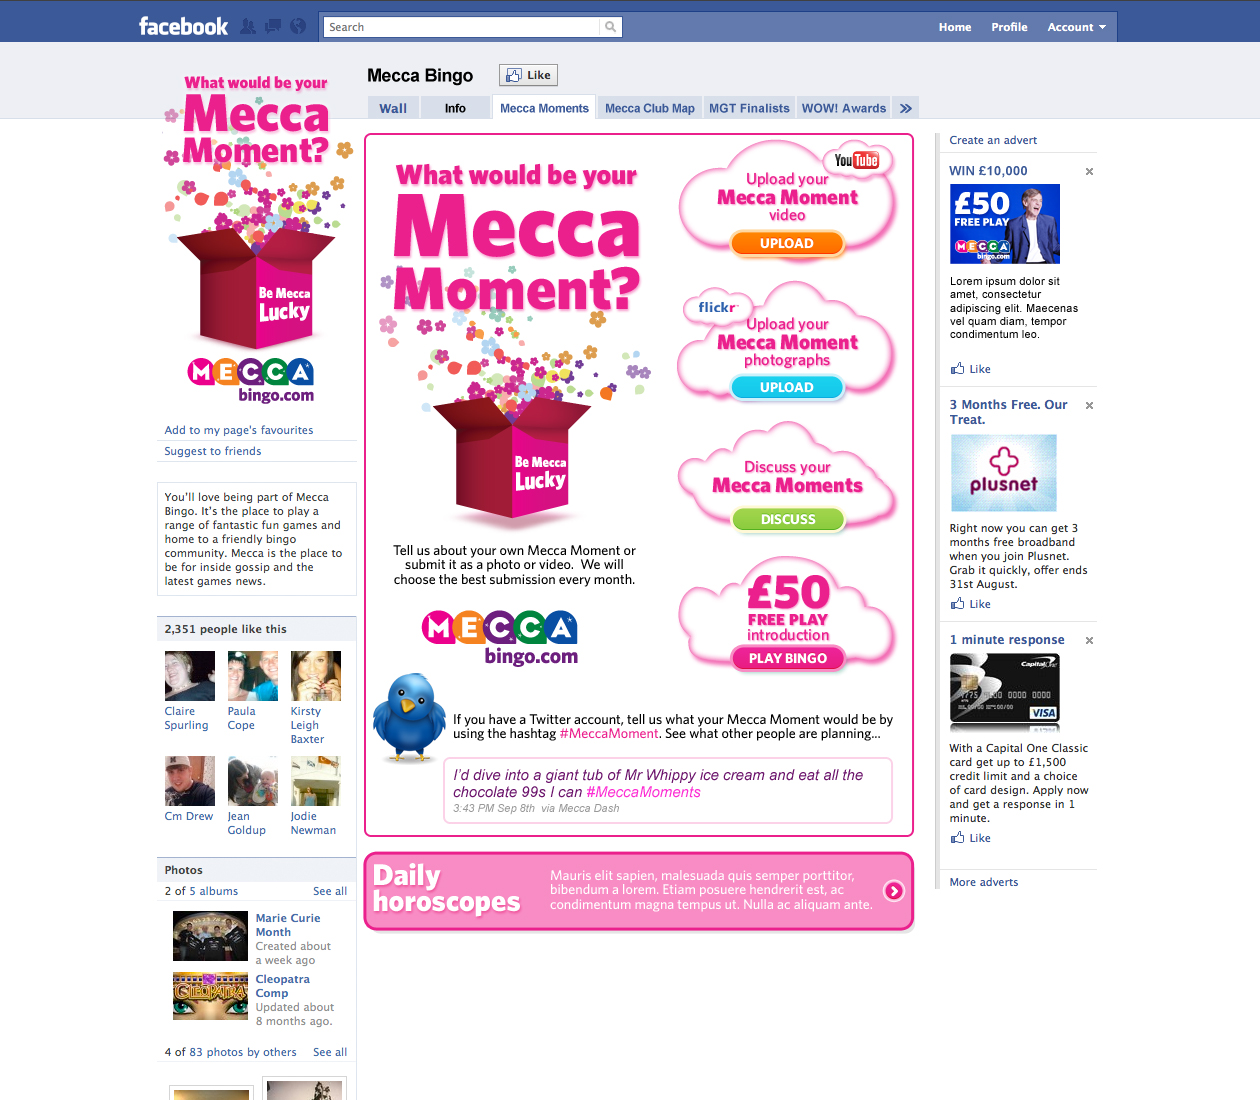 Mecca Moments - Facebook page